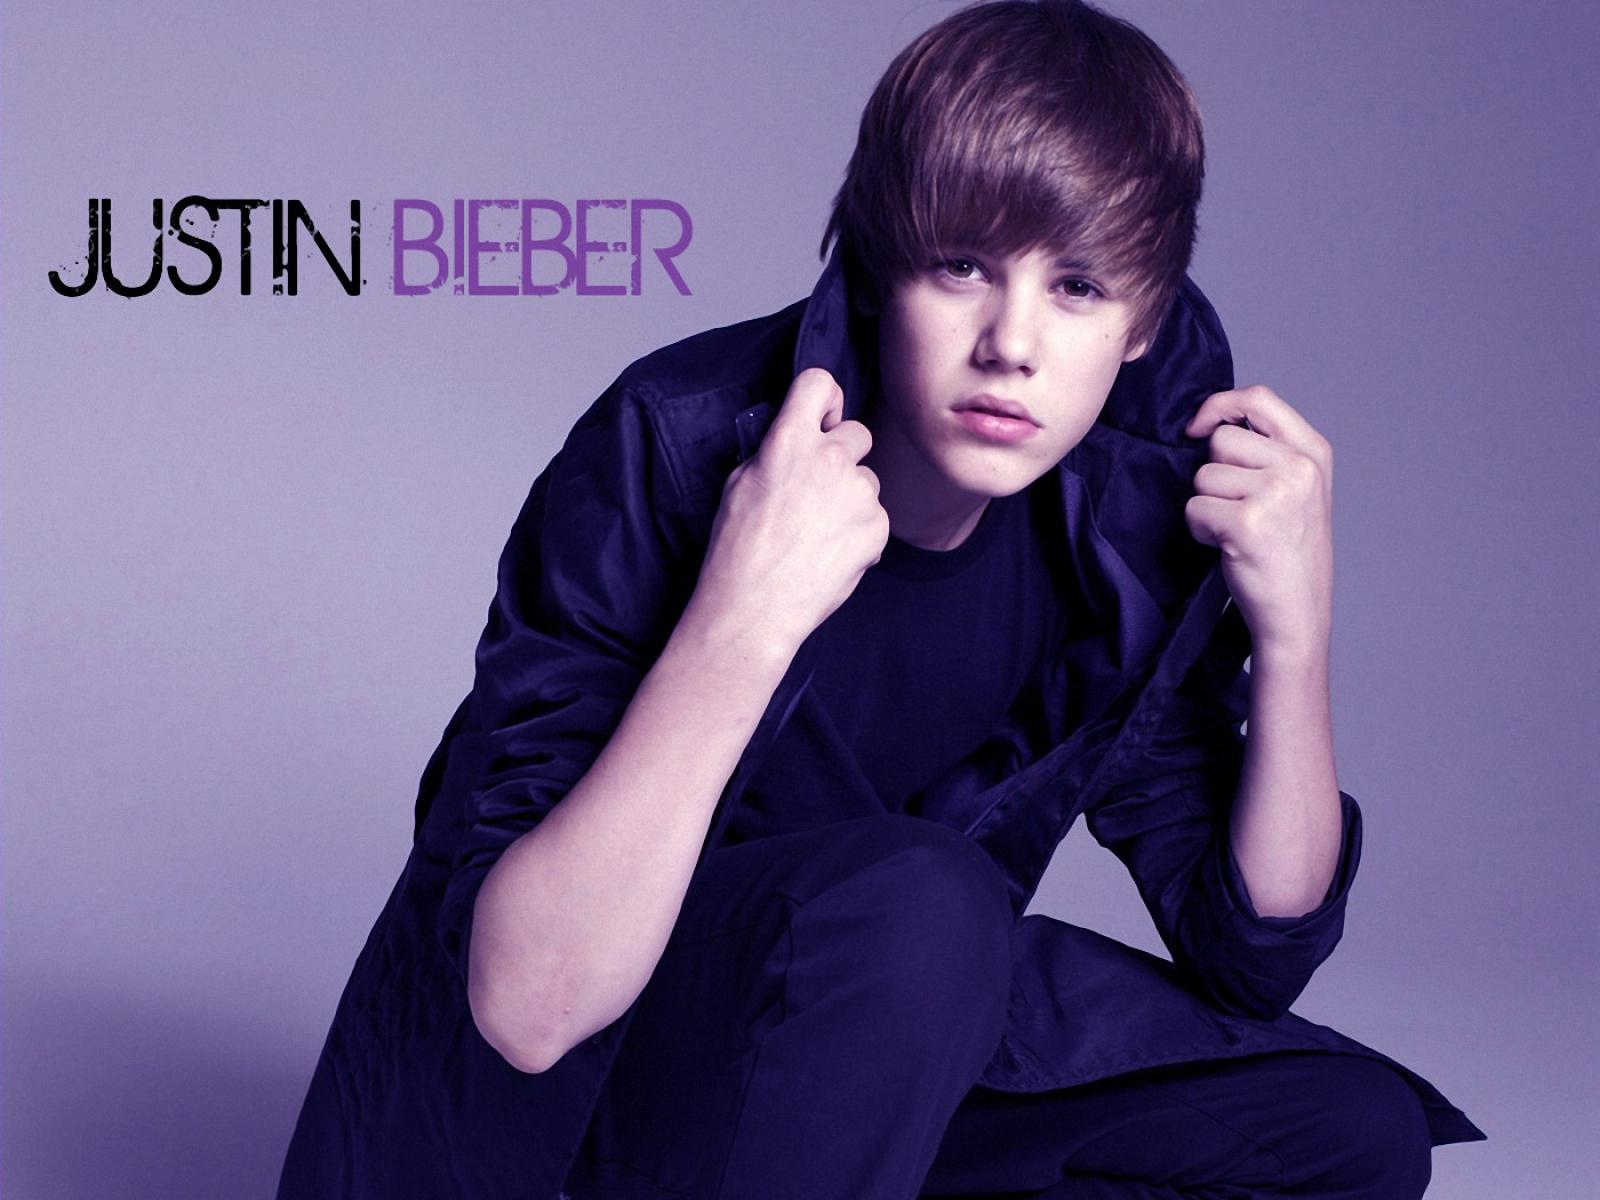 Love Yourself Wallpaper Justin Bieber : Justin Bieber Wallpapers HD 2015 - Wallpaper cave